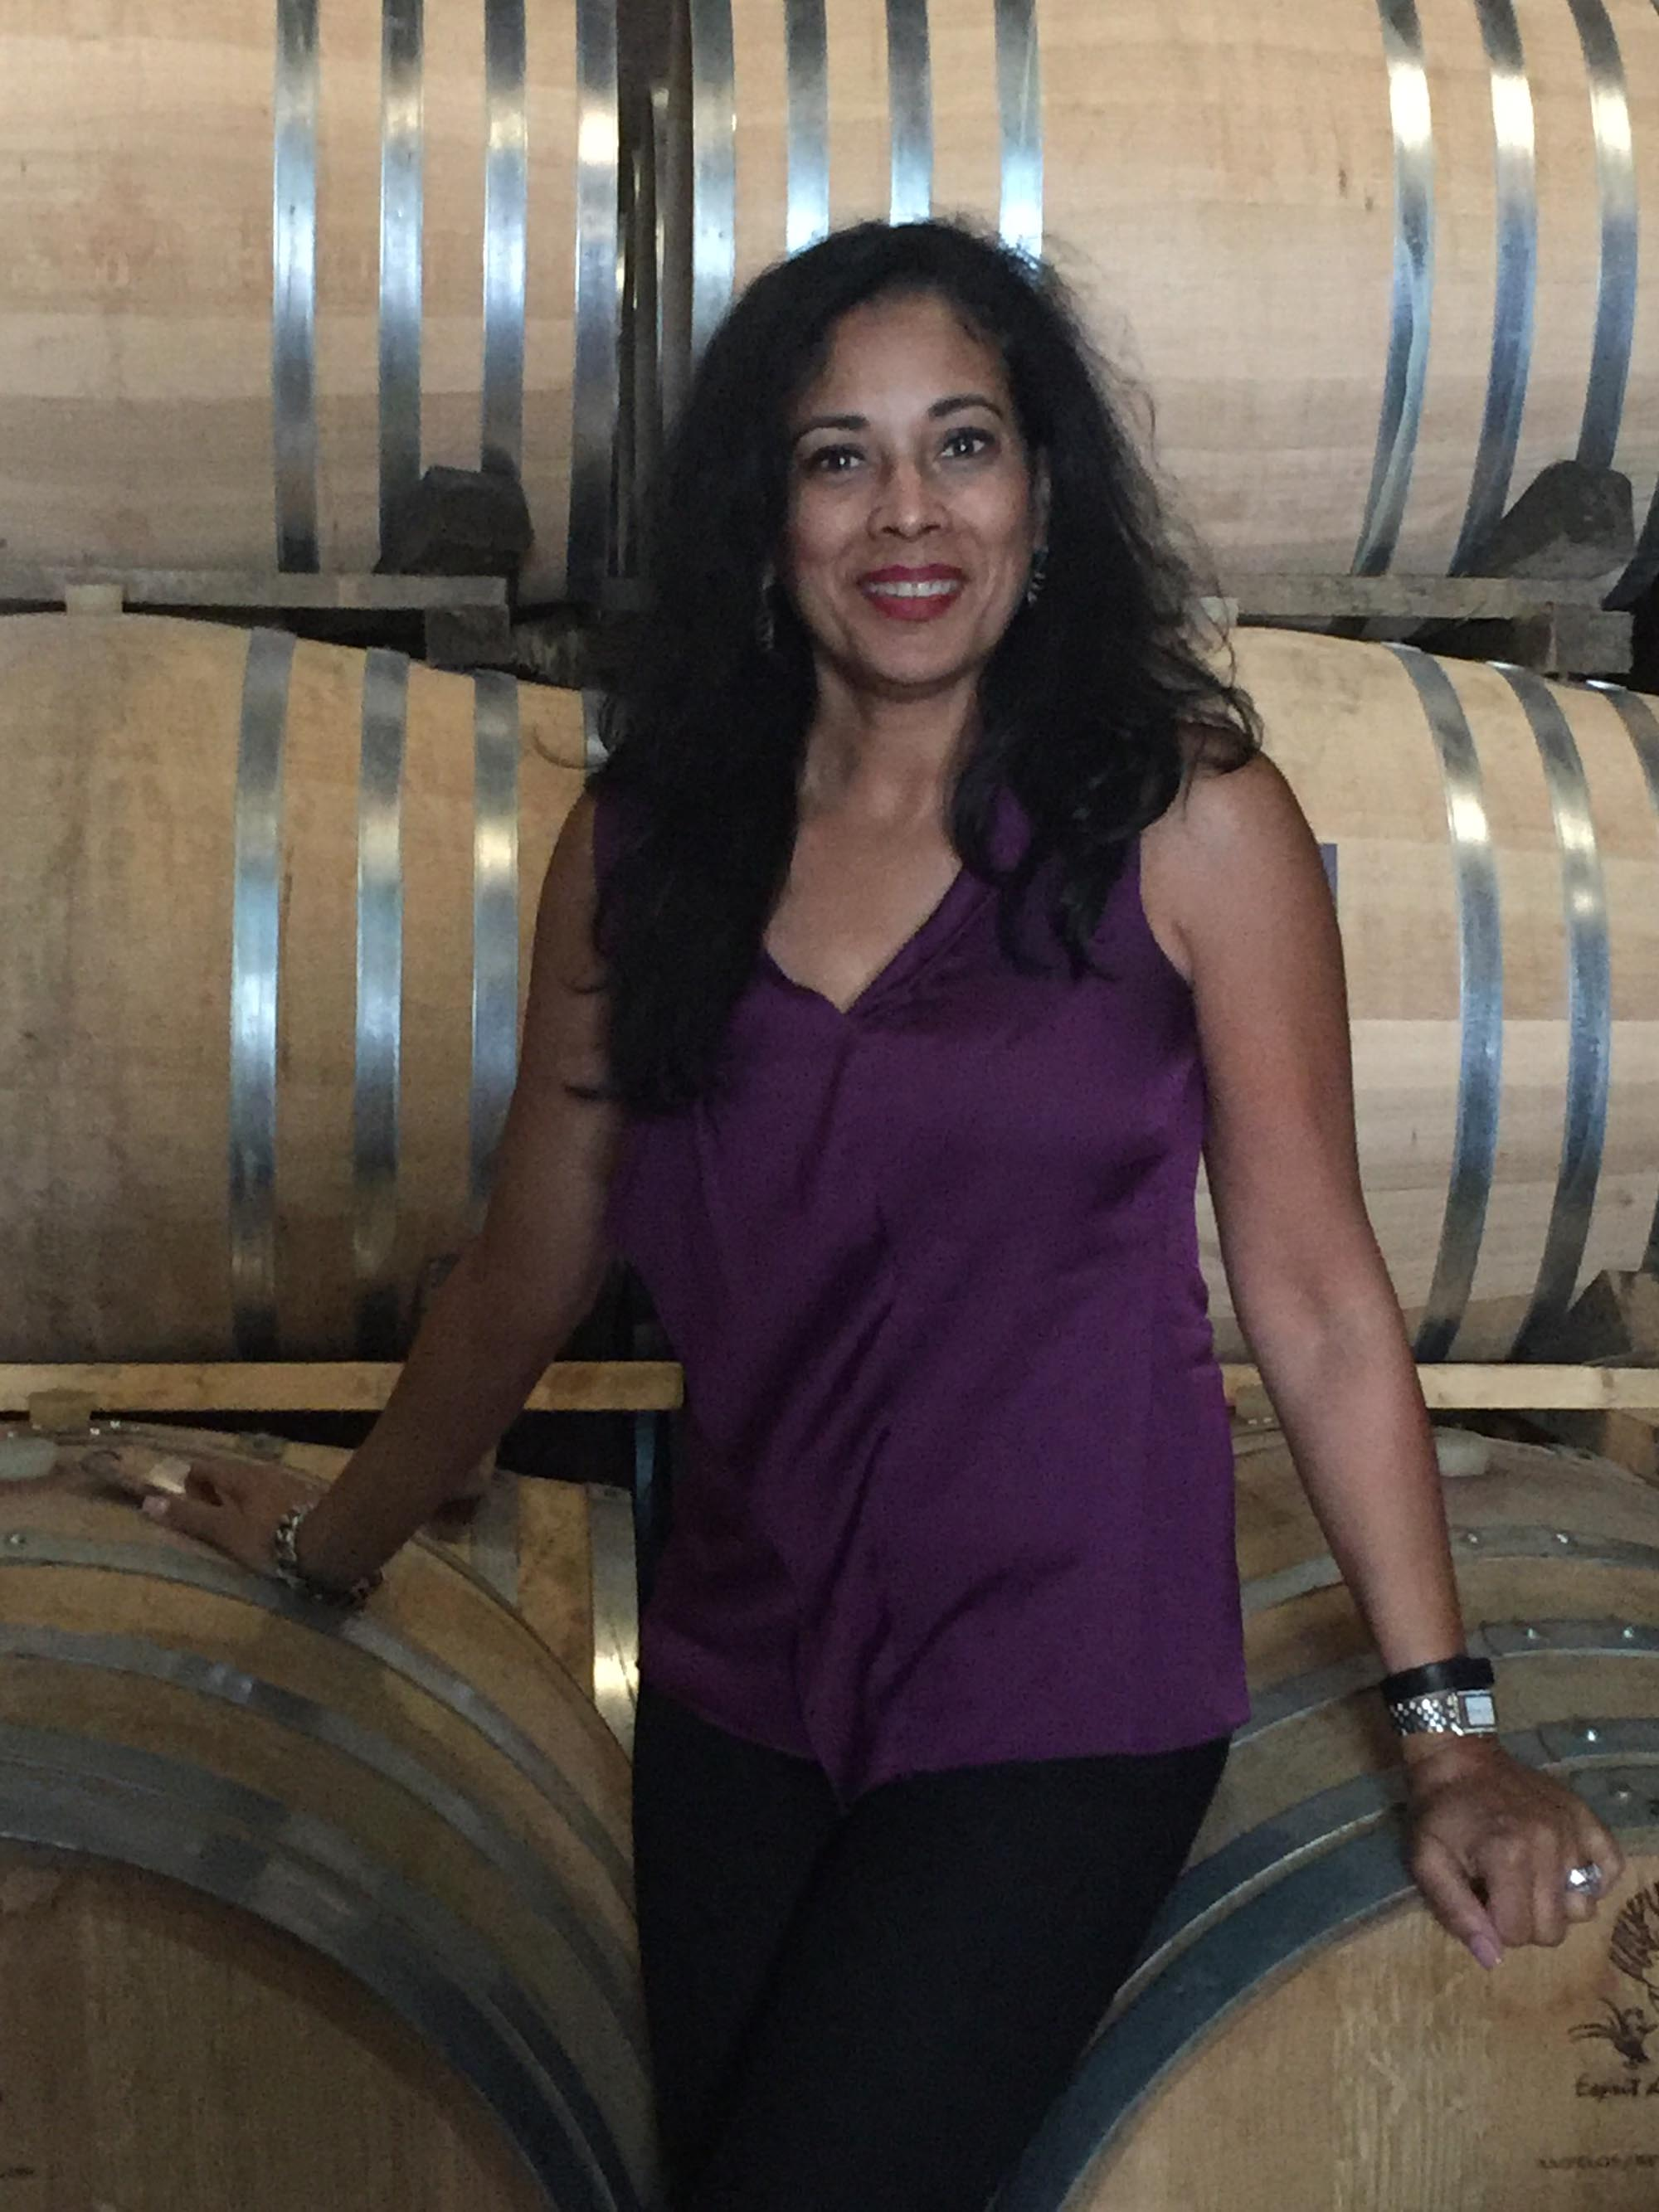 Woman with Wine Barrels